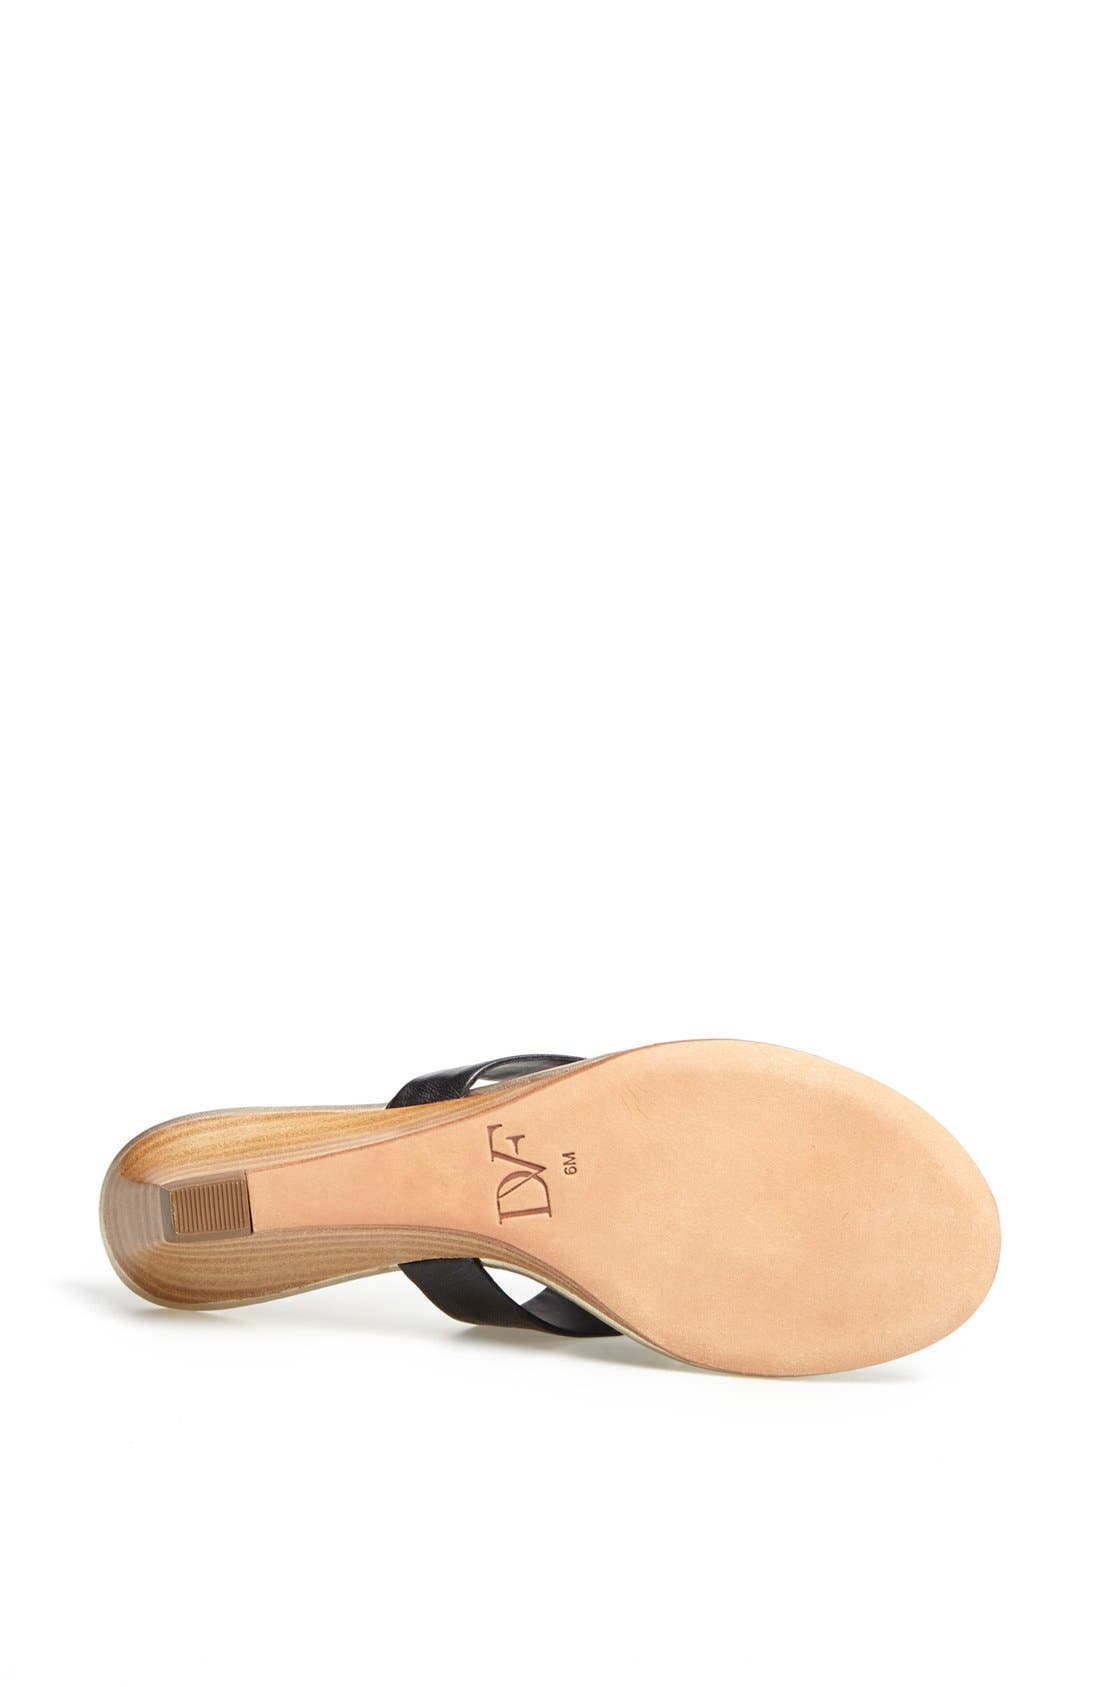 Alternate Image 4  - Diane von Furstenberg 'Tiles' Leather Sandal